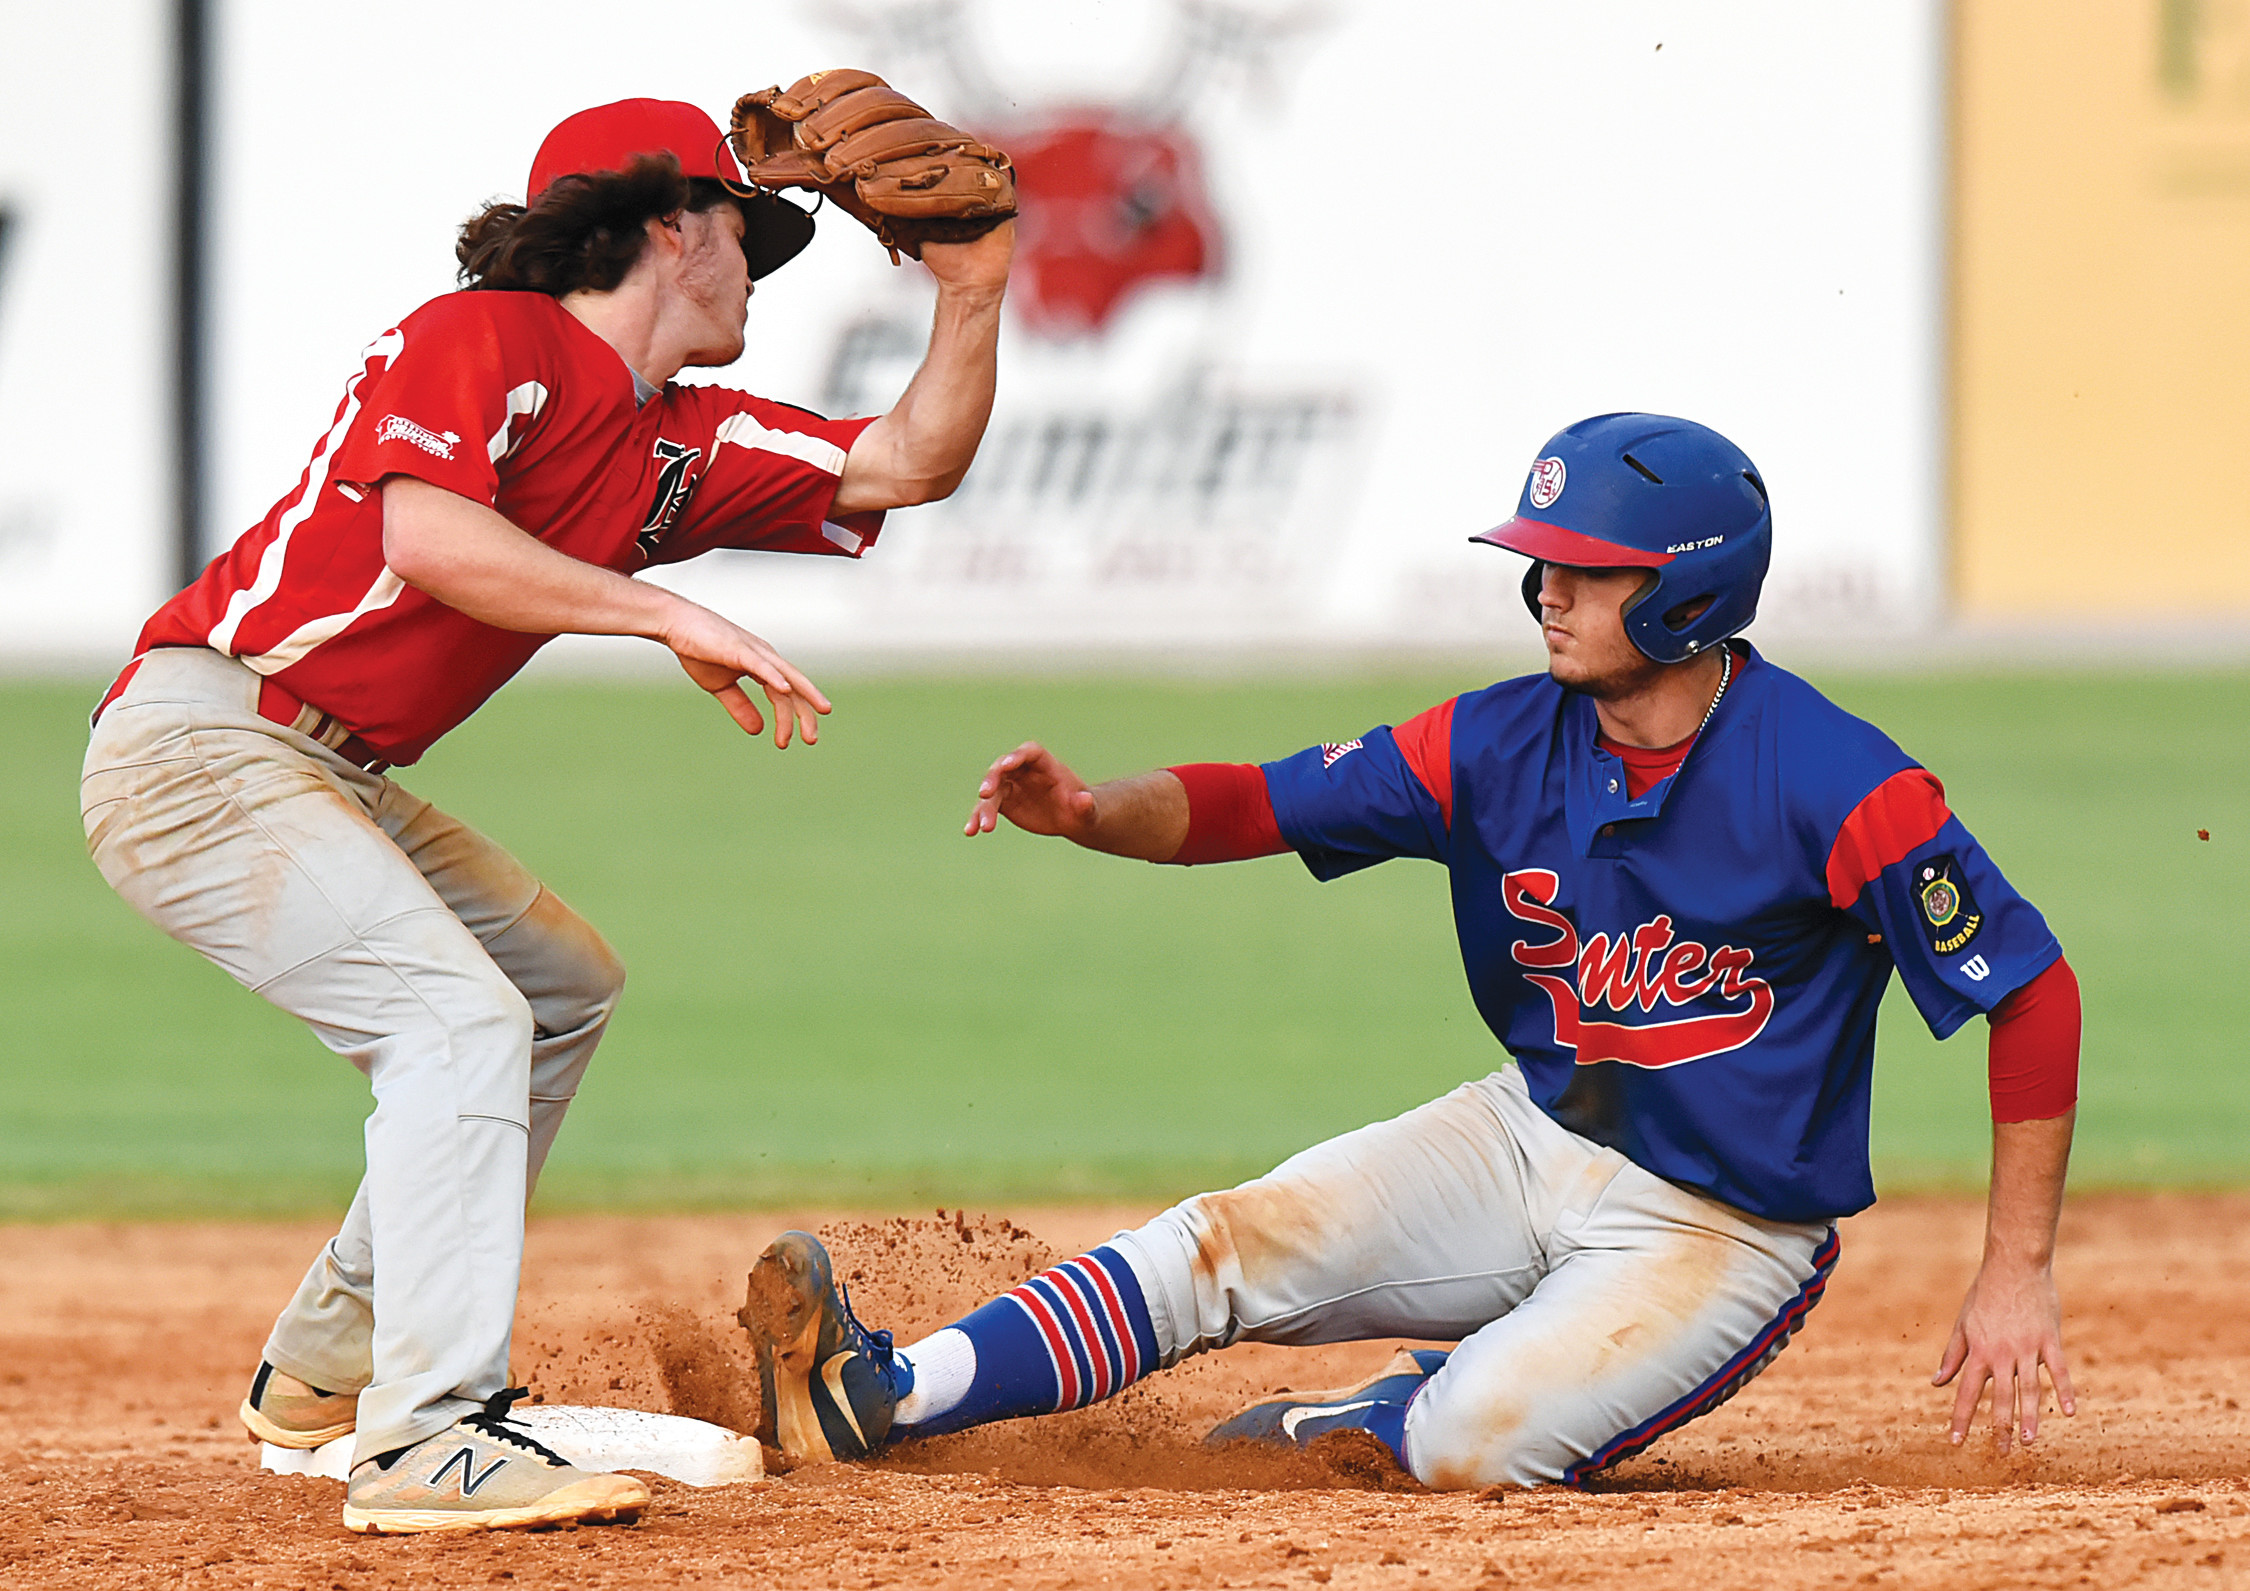 Sumter's Dawson Price slides safely into second base for a stolen base as Hartsville second baseman Matt Lynch tries to get a tag  down in the P-15's 11-6 victory on Tuesday at Riley Park.